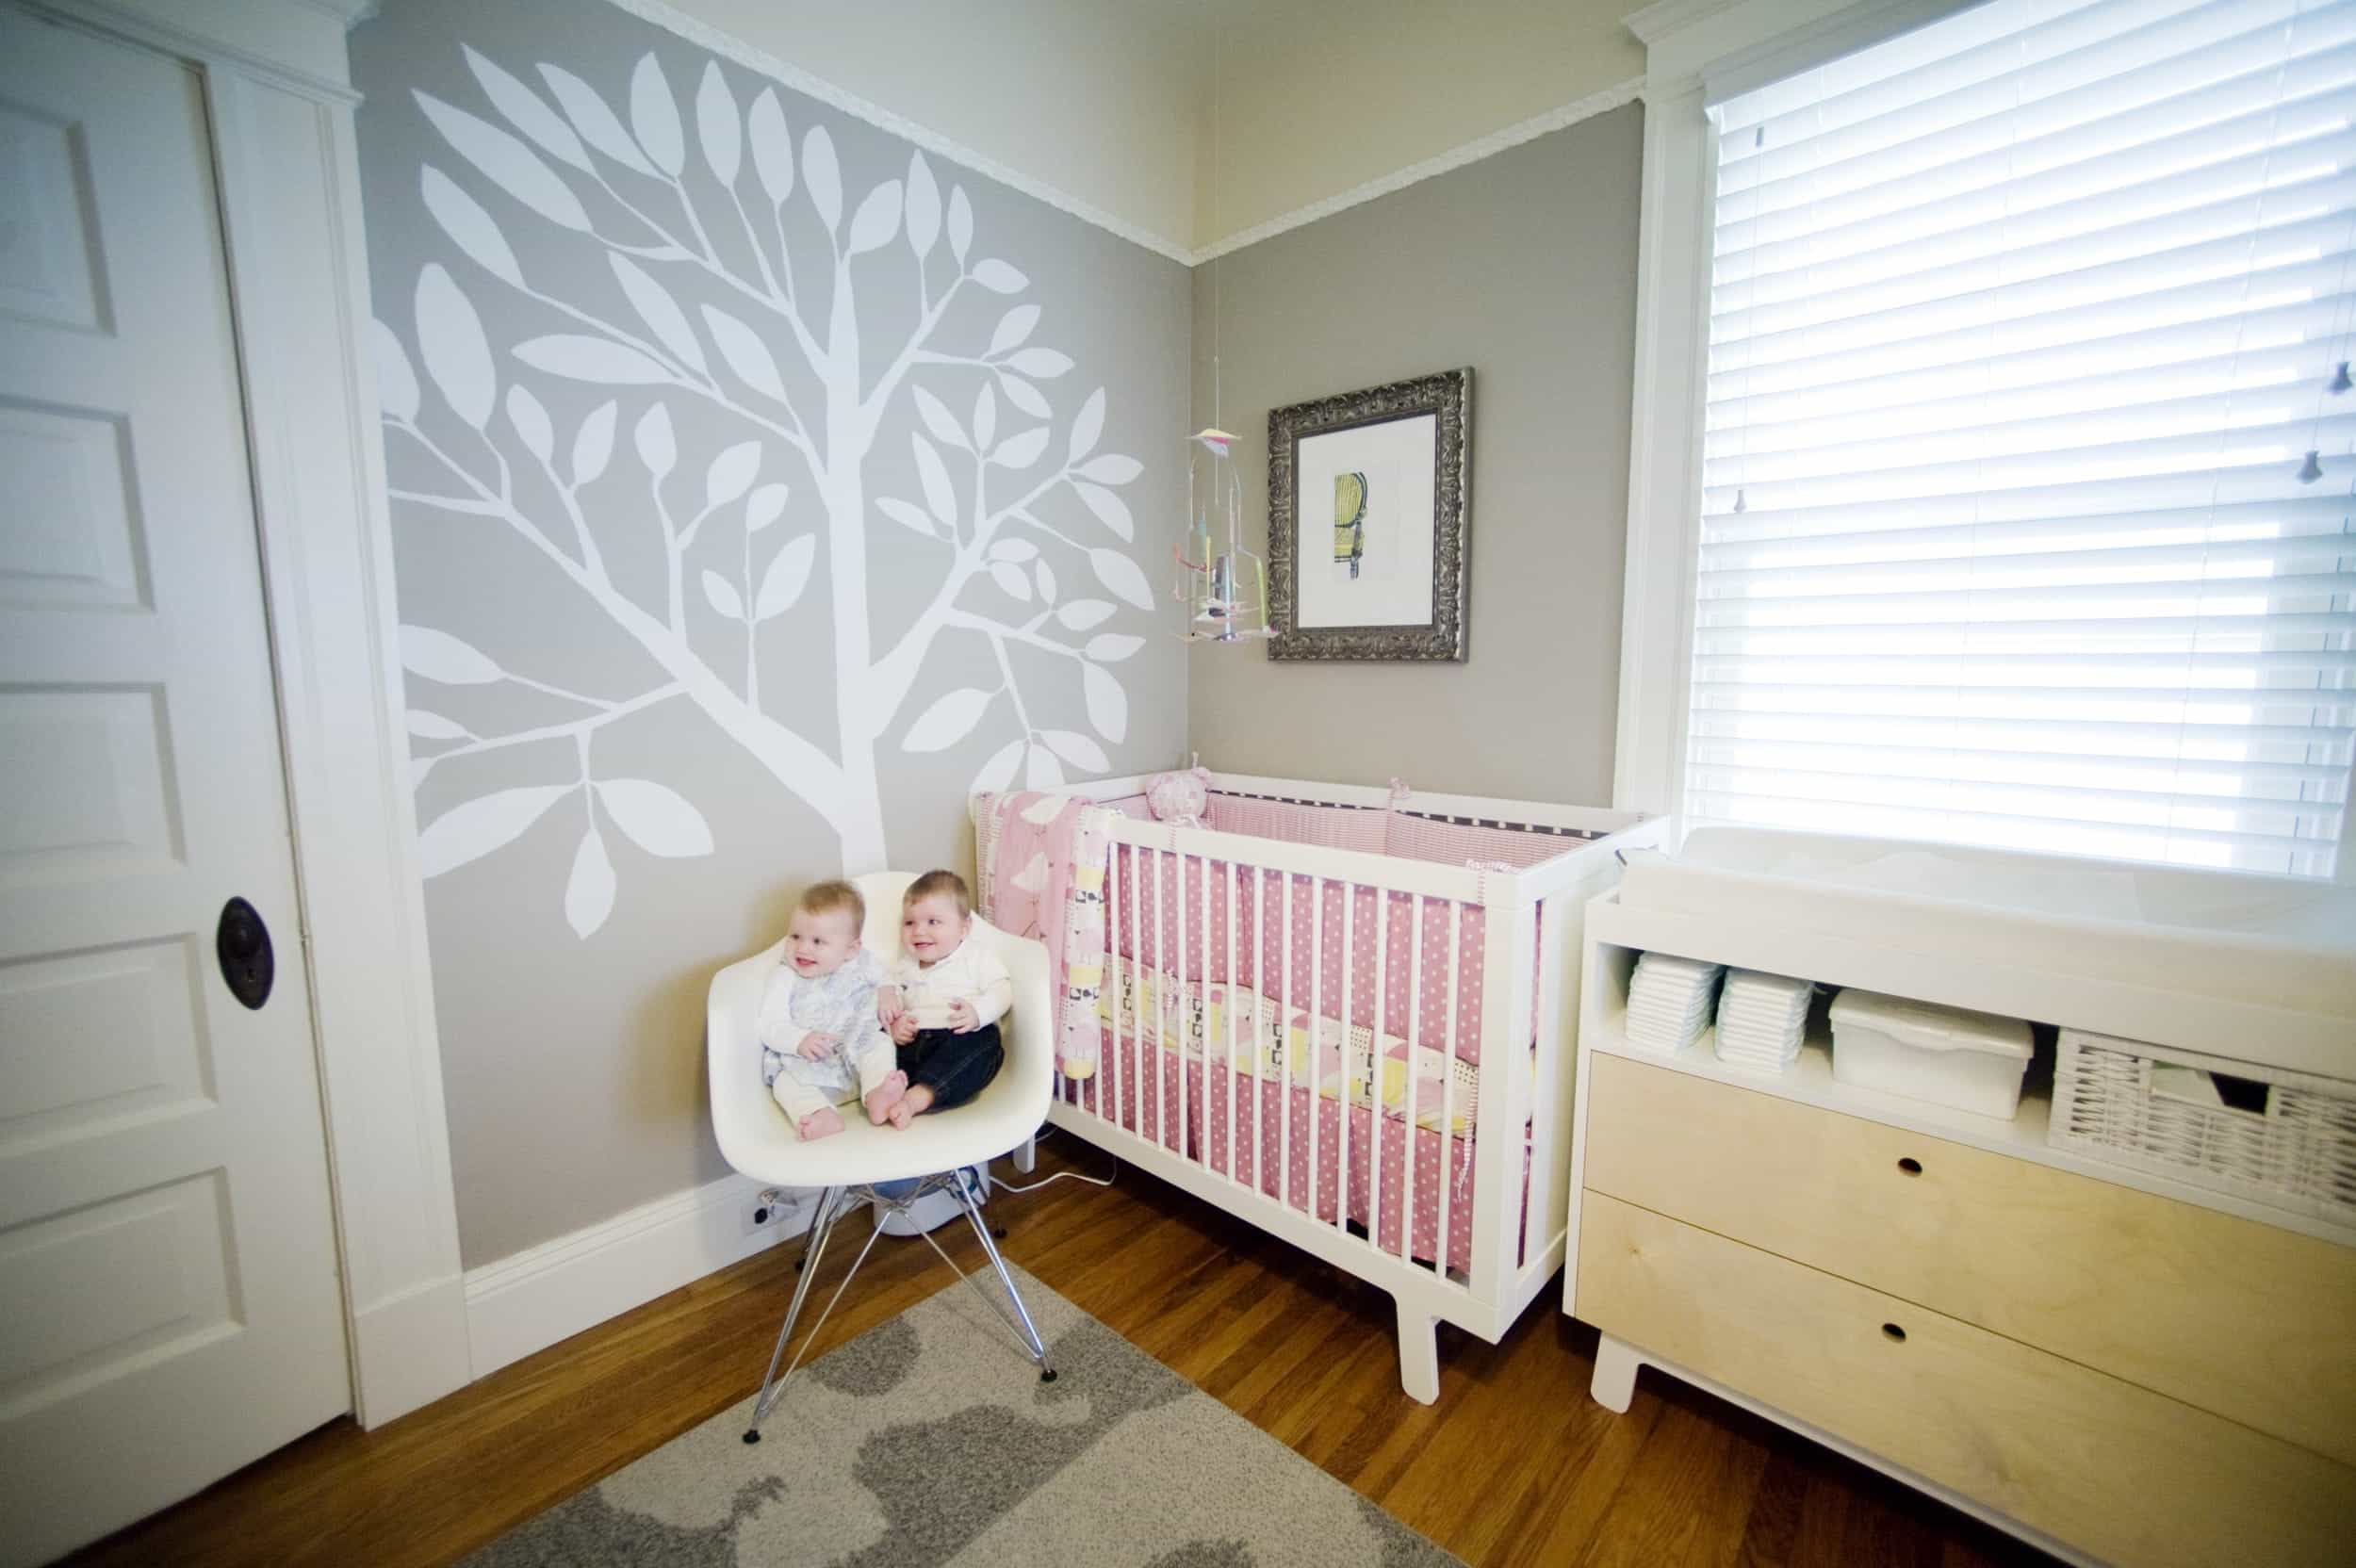 Charming Modern Baby Bedroom For Twins (Image 5 of 33)